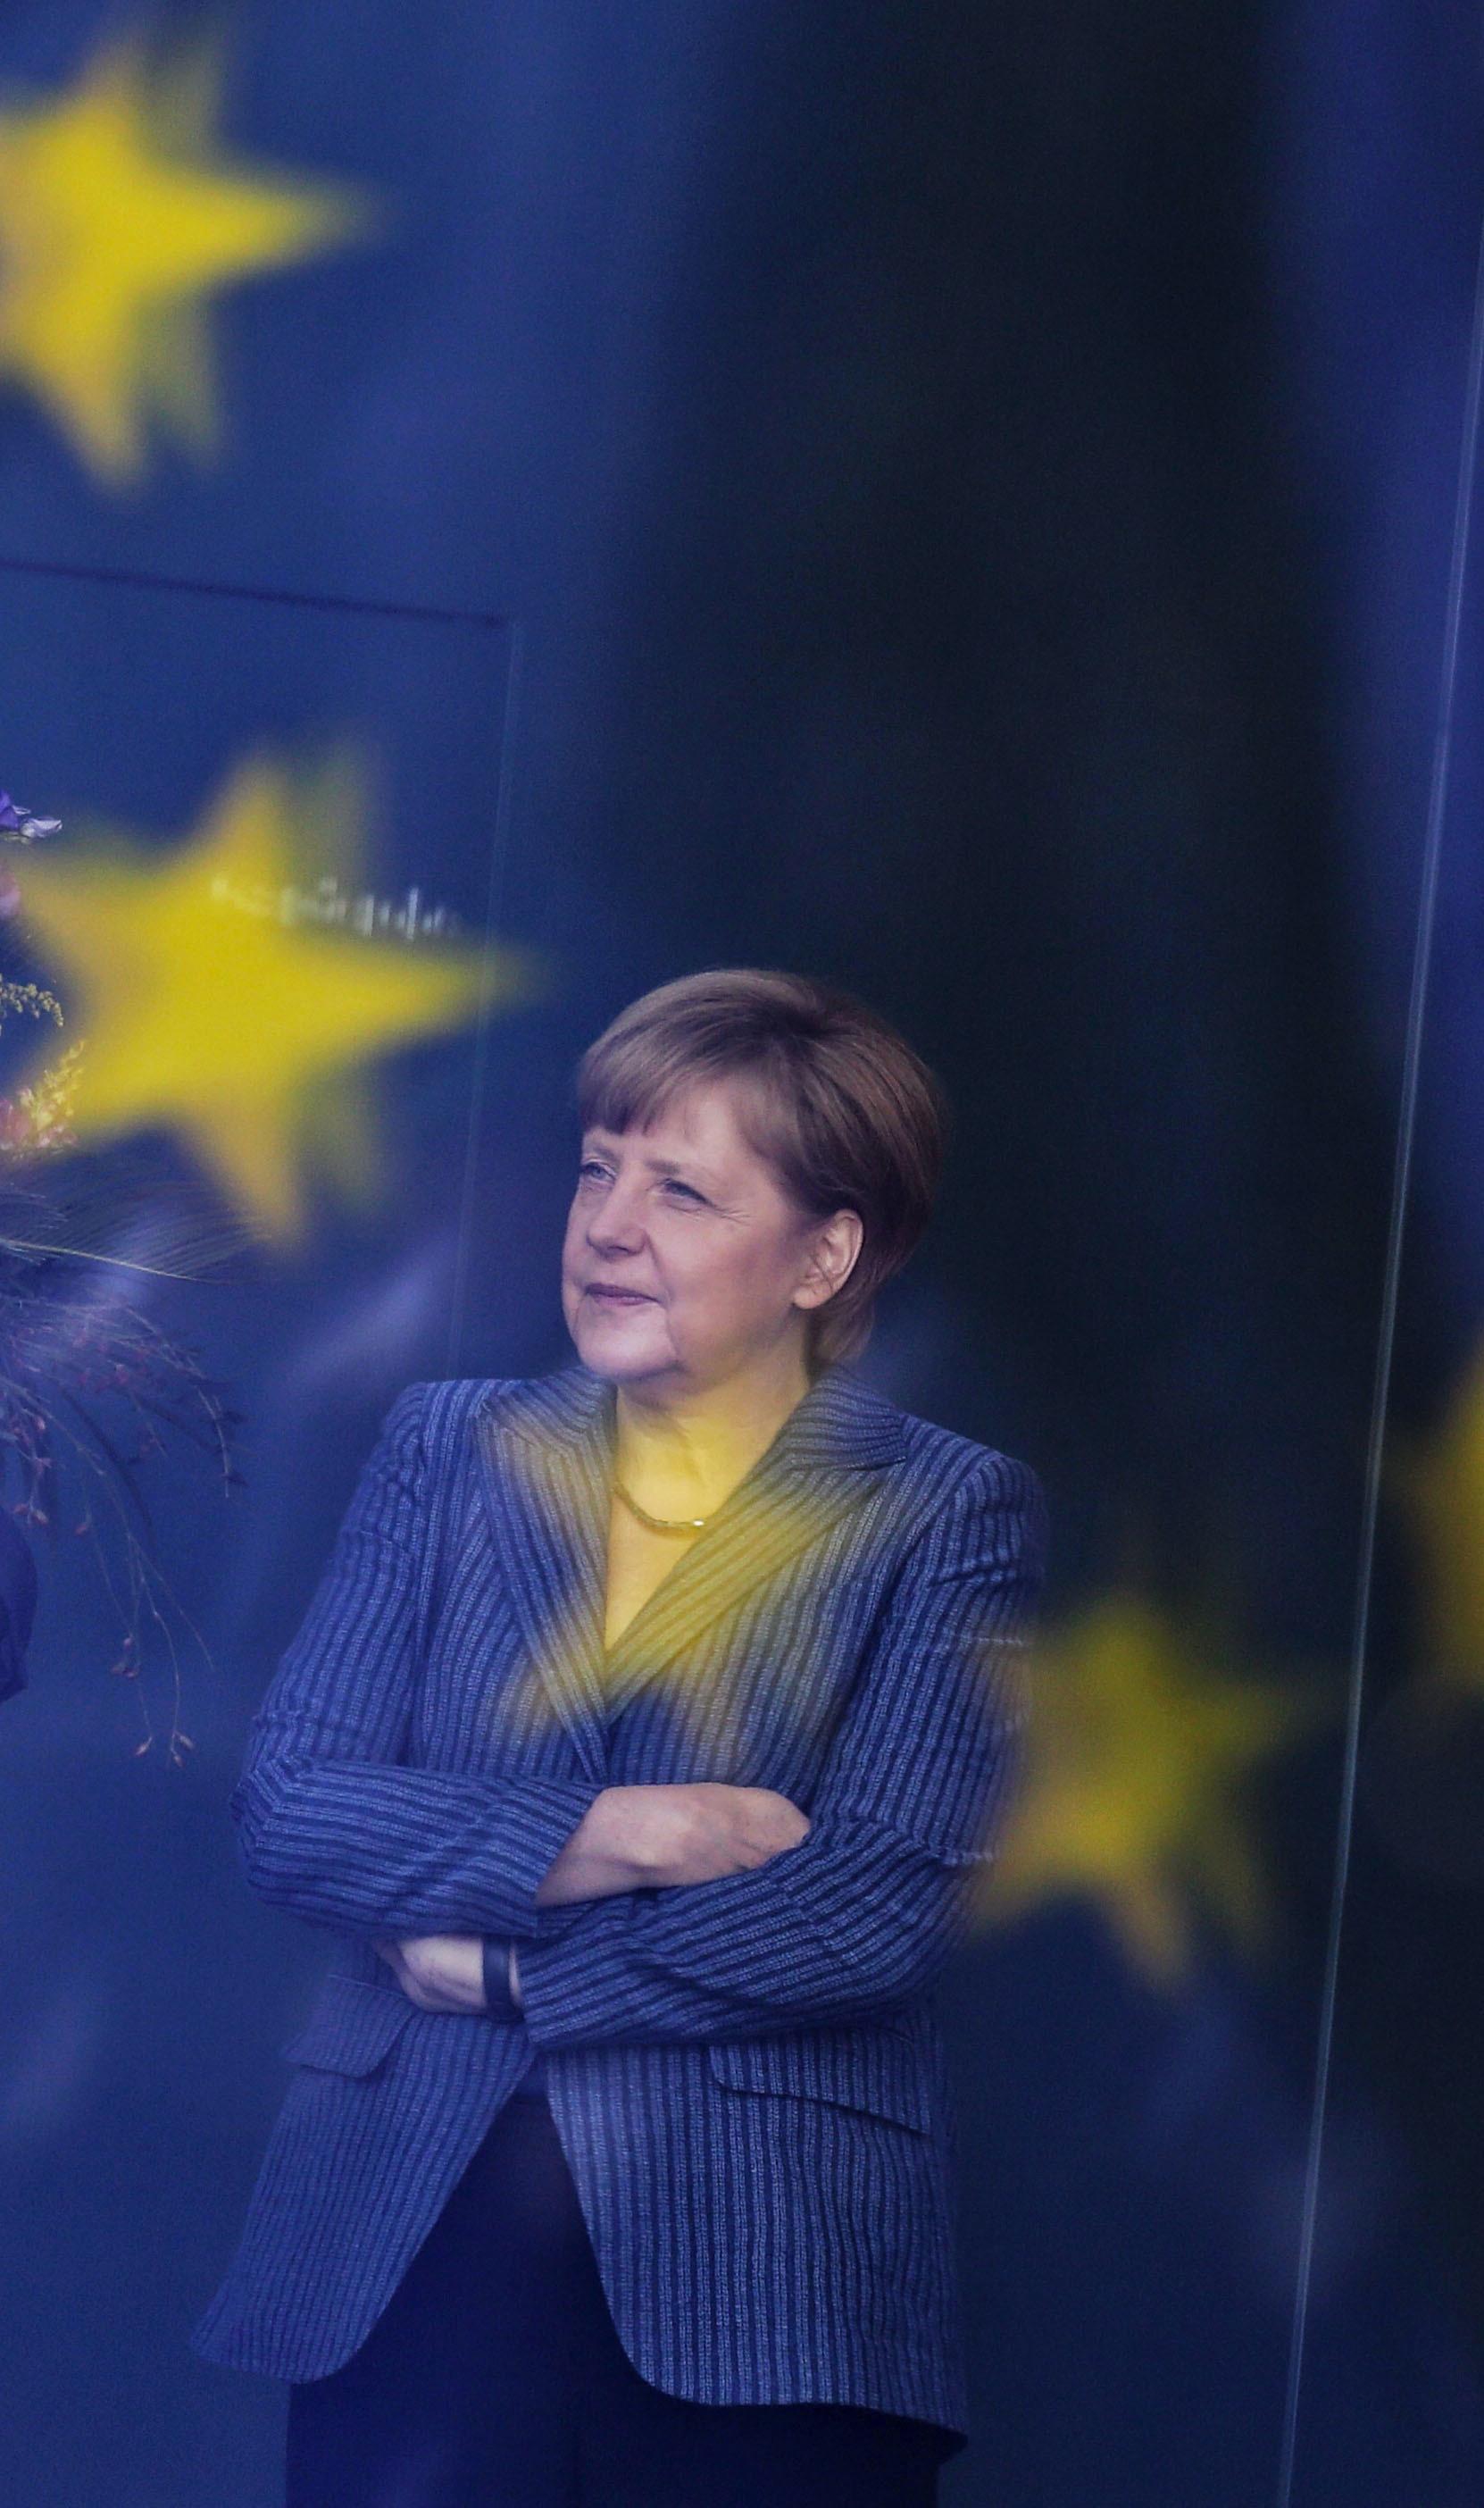 German Chancellor Angela Merkel stands at the chancellery in Berlin on June 2, 2014. (AP Photo/Markus Schreiber, file)